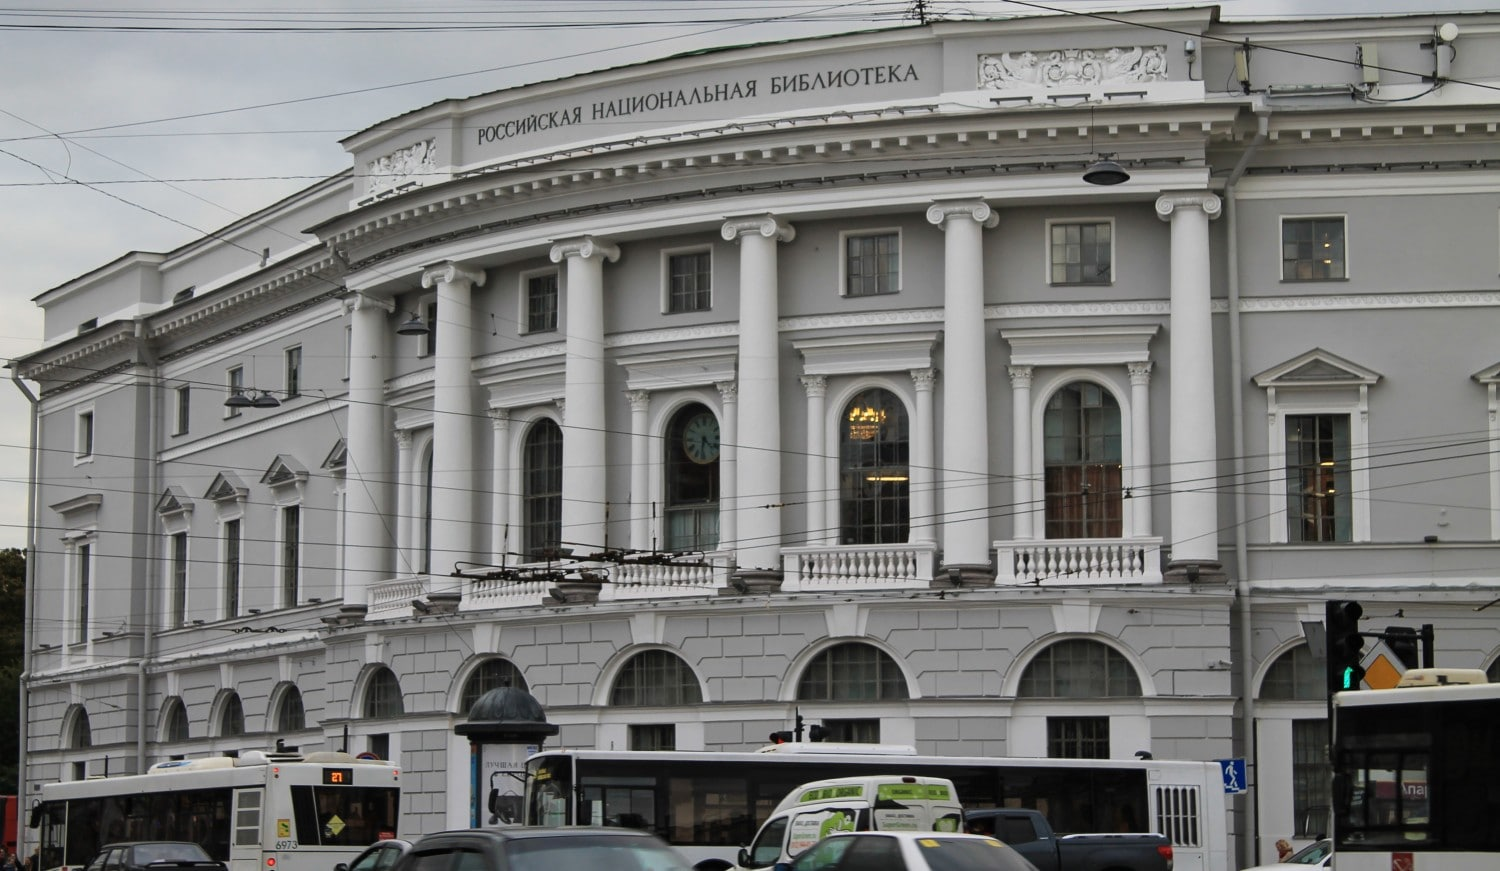 National Library of Russia on Невский пр.